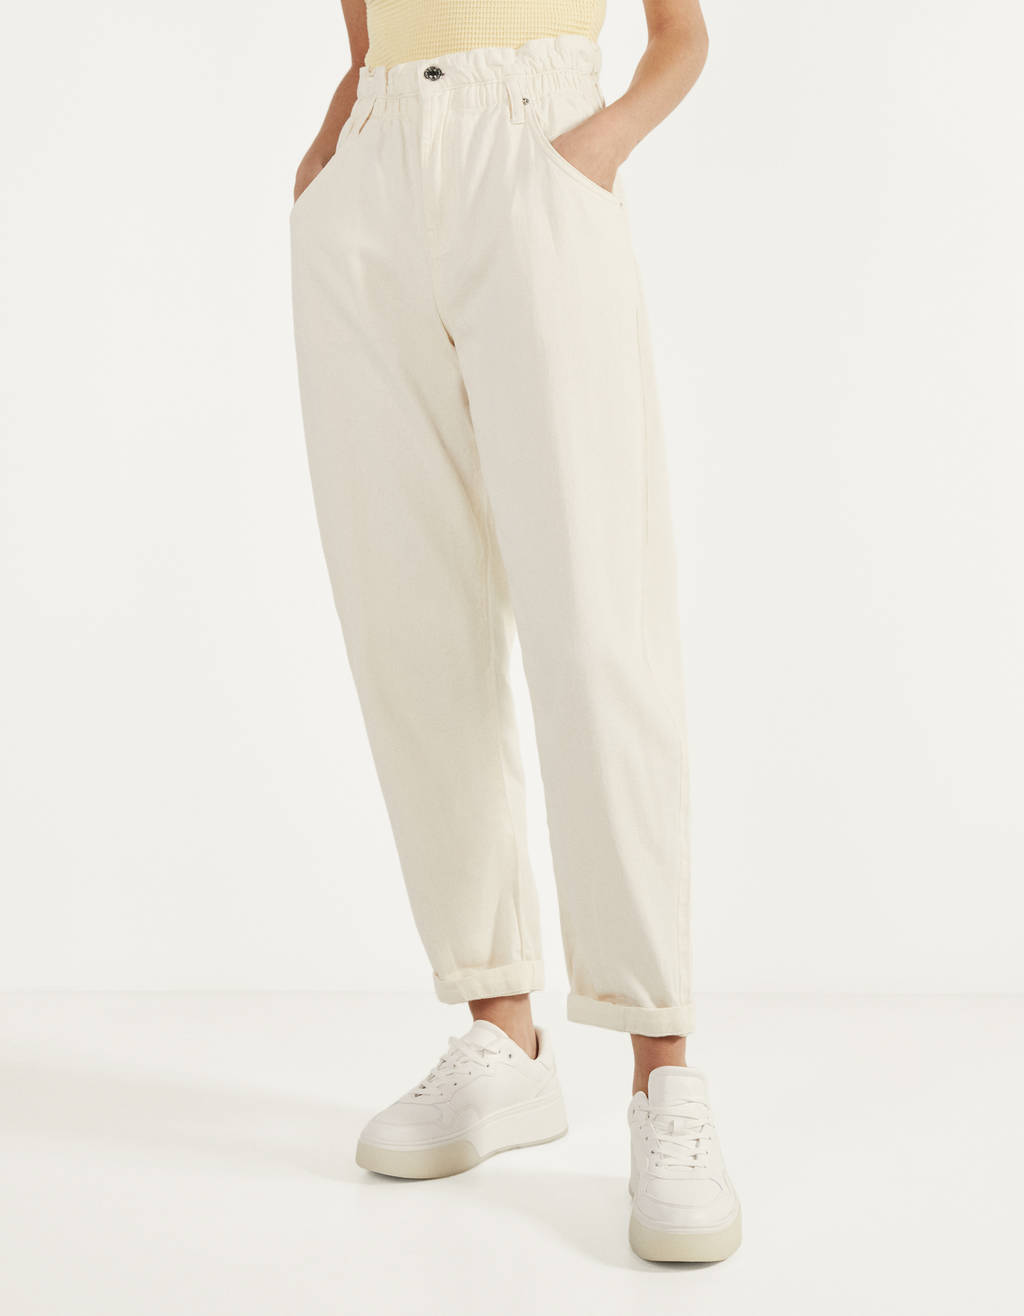 Slouchy trousers with an elastic waistband